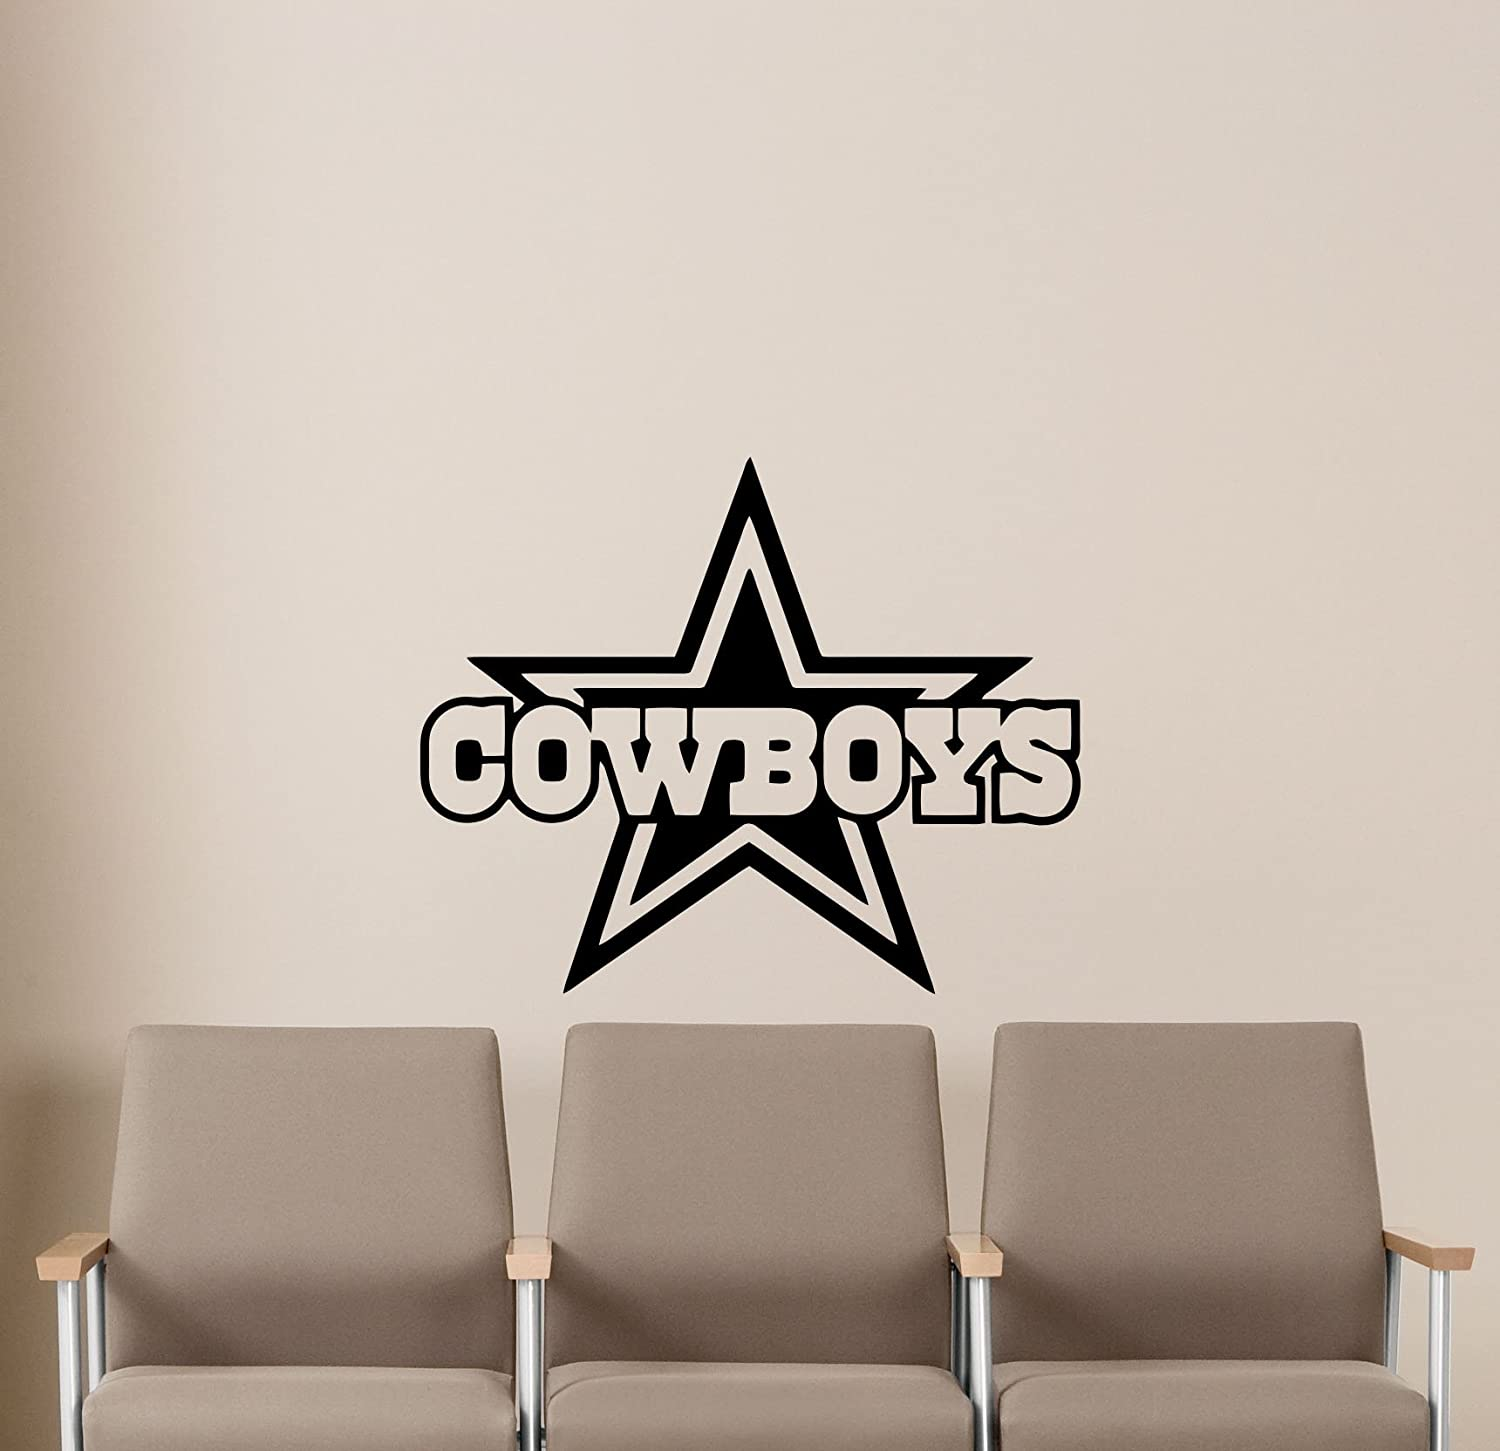 Ncaa dallas cowboys wall decals sports football club emblem kids children poster stencil decor sports vinyl sticker home art design removable mural 489n